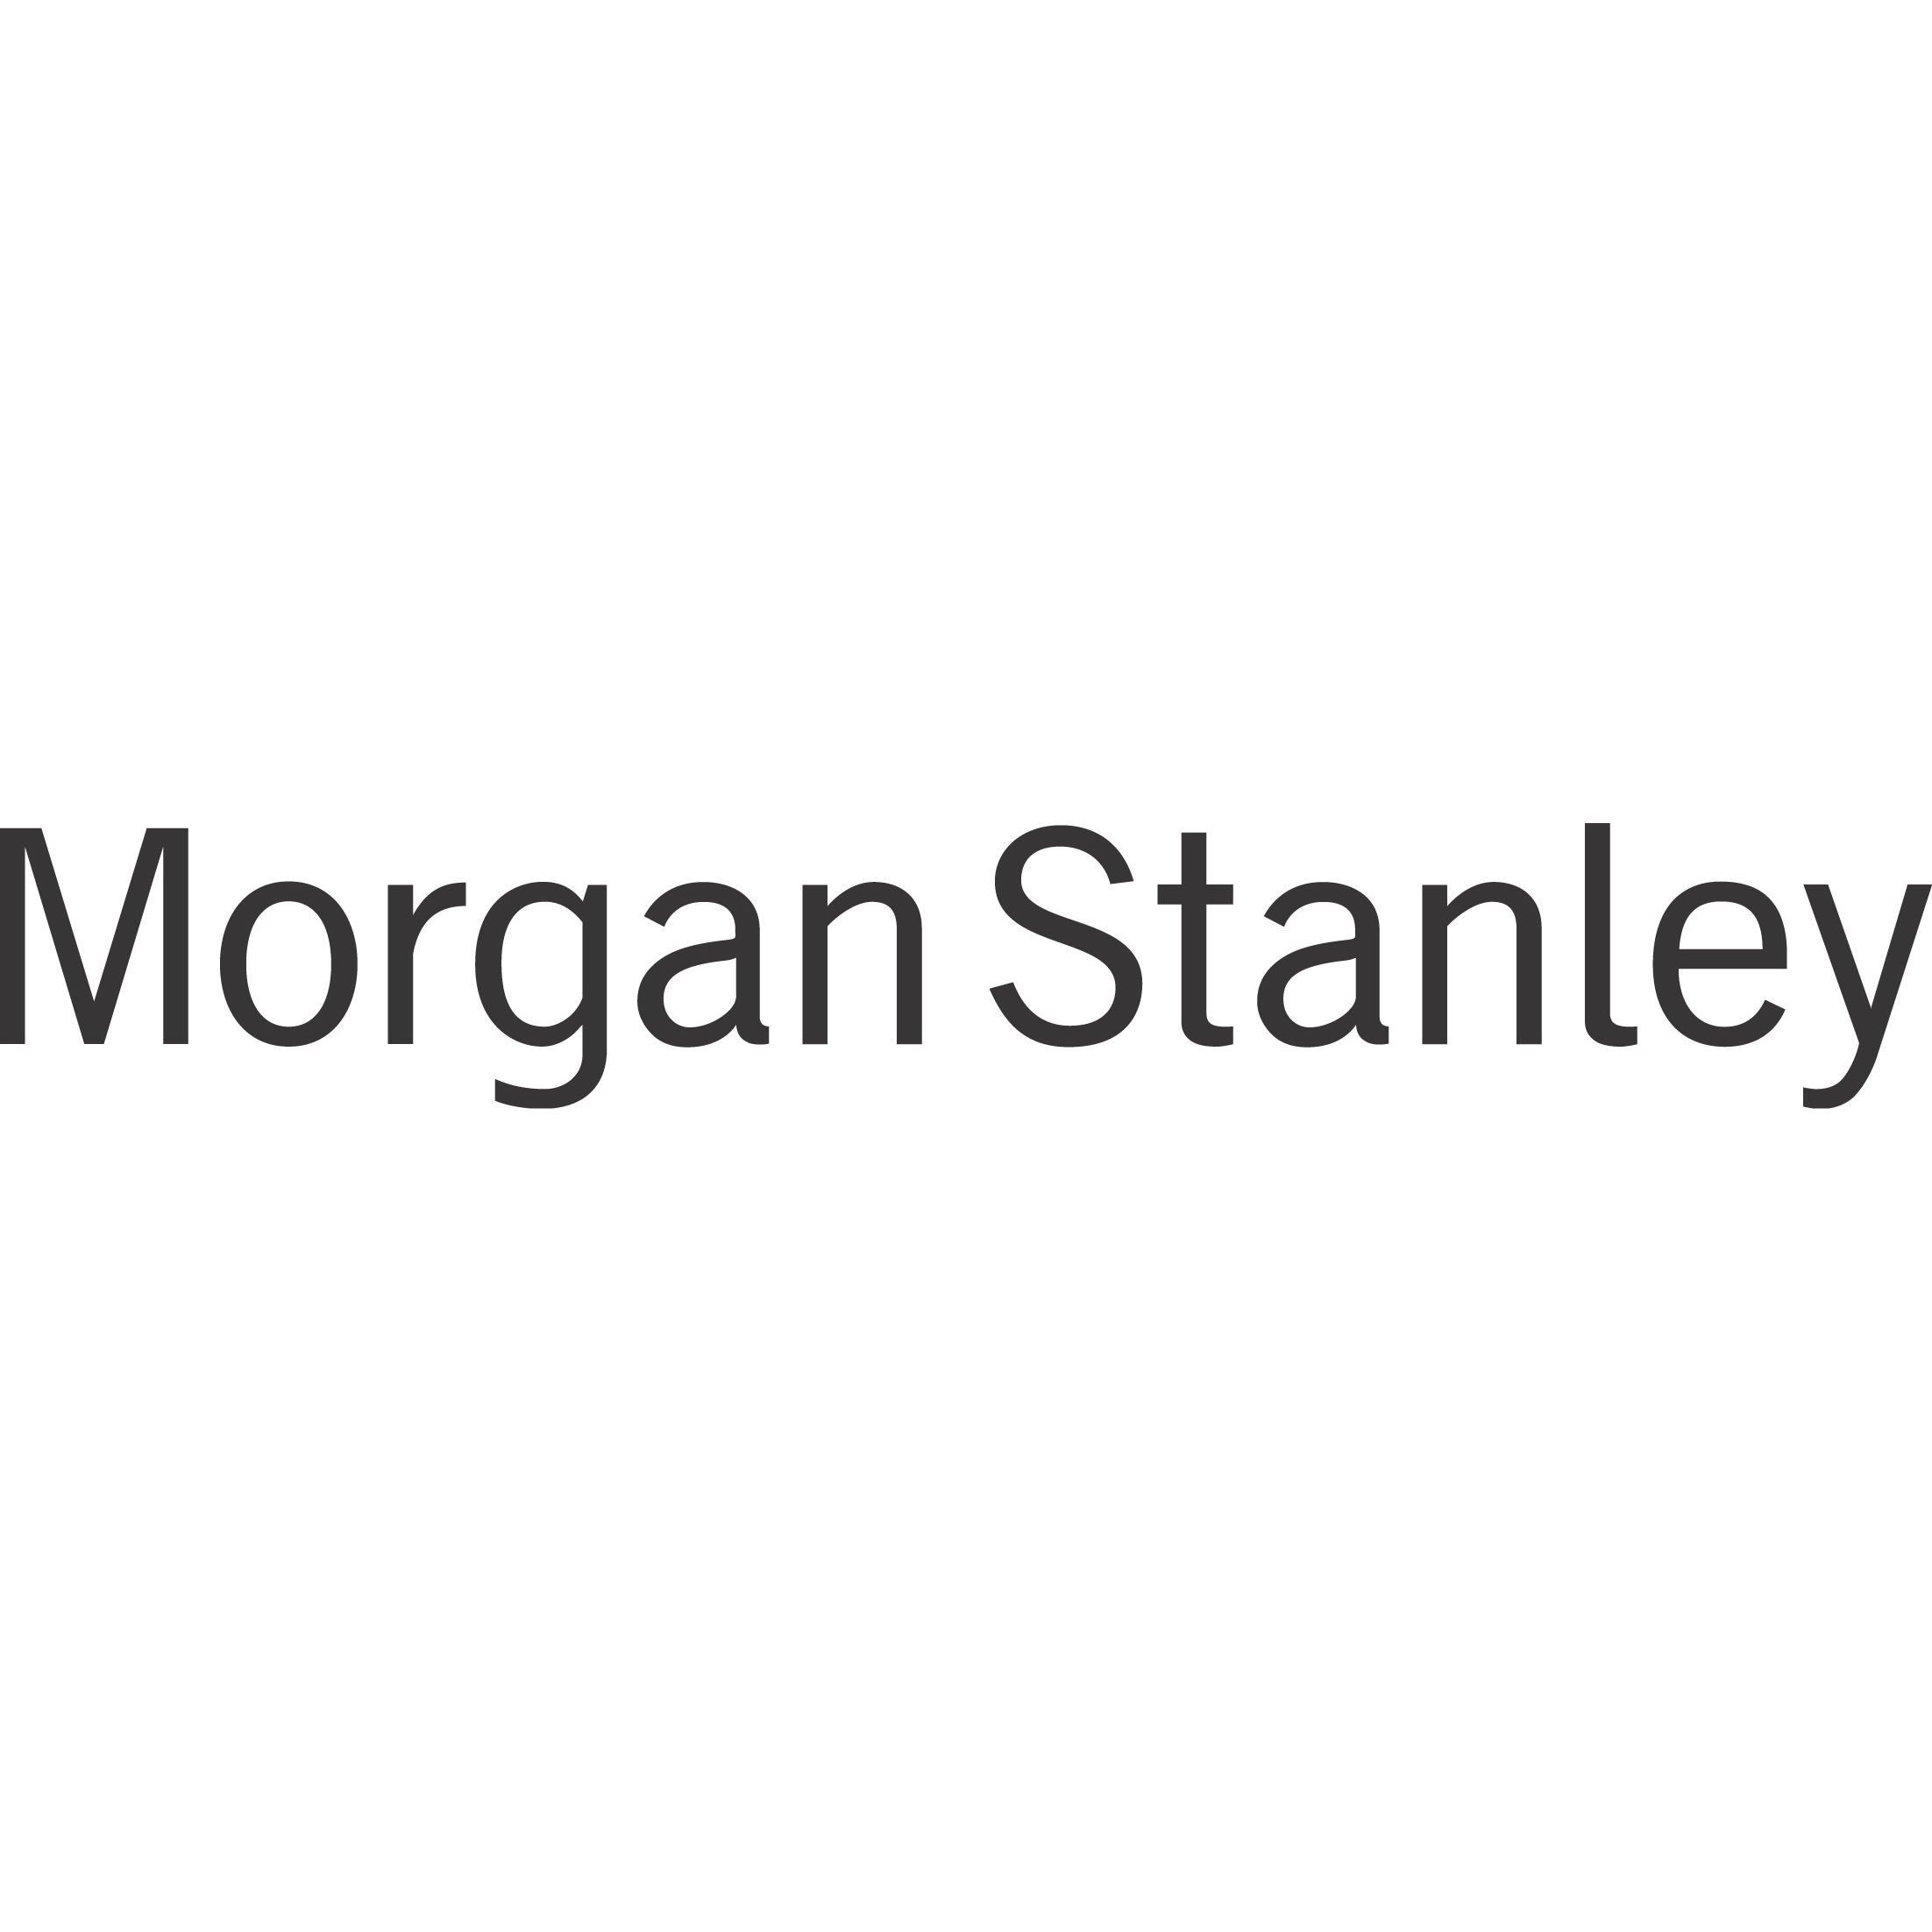 James Henkel - Morgan Stanley | Financial Advisor in Denver,Colorado